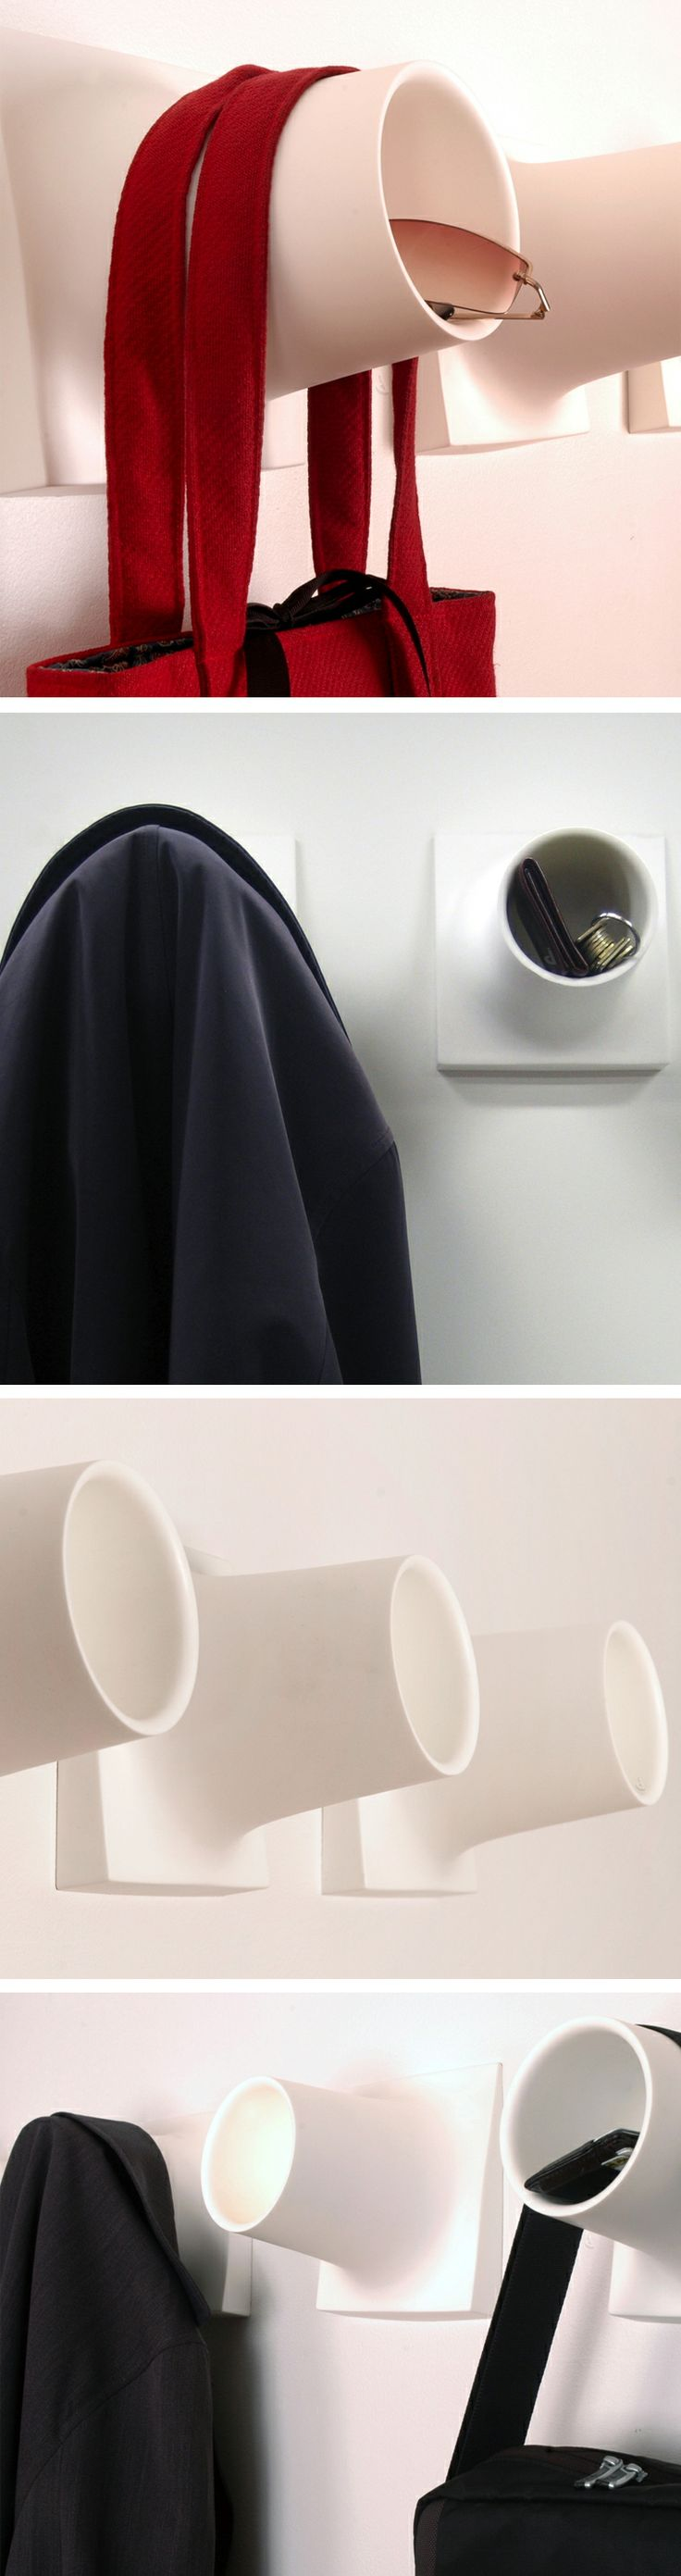 Cubby coat hook // this clever design features a cubby to put keys, glasses etc. and gently hang a coat #product_design